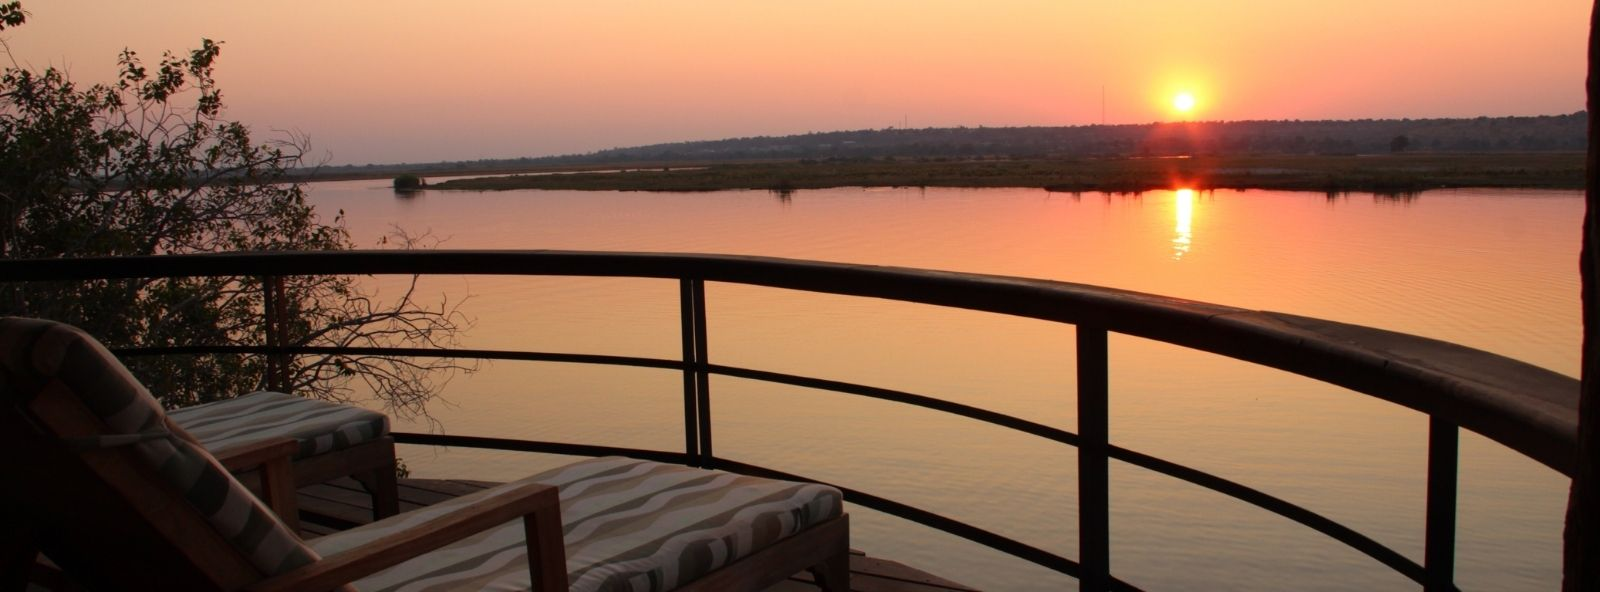 Enjoying a Chobe River Sunset - view from guests balcony over the Chobe River enjoying the sunset in the distance